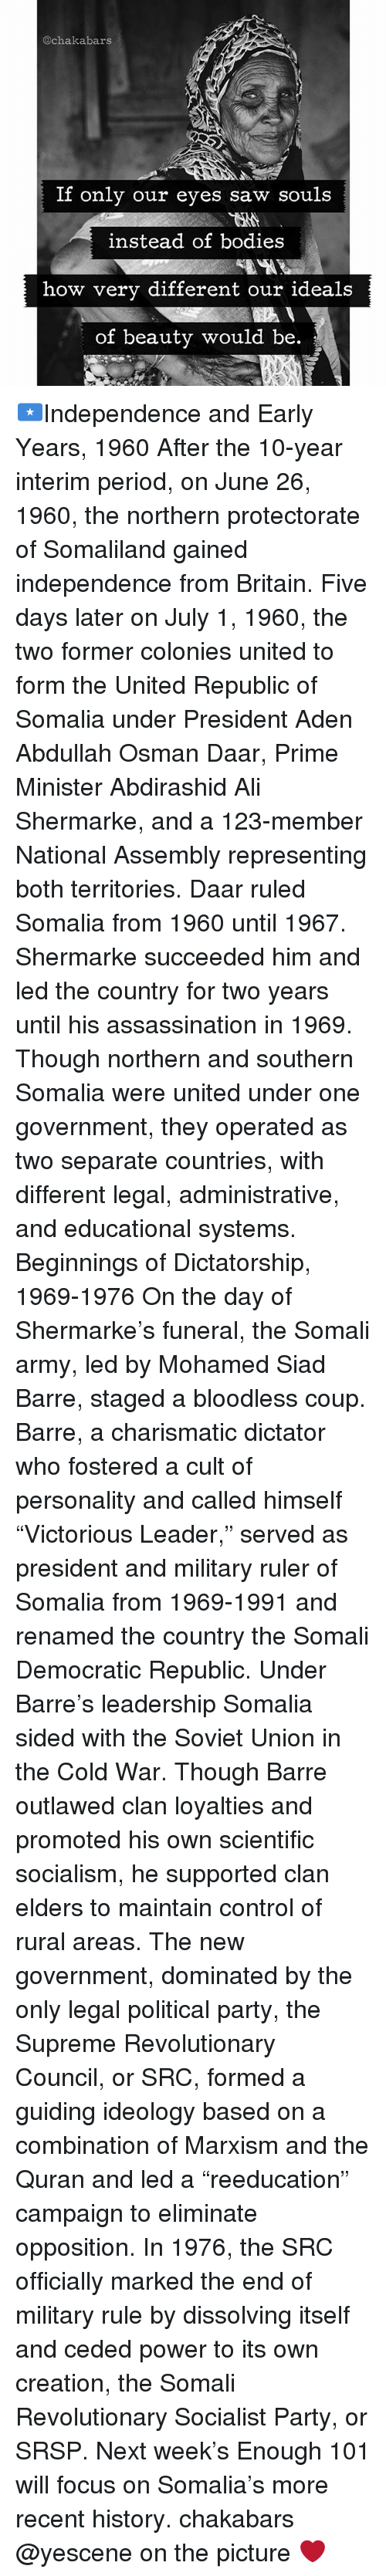 """charismatic: @ch akabars  If only our eyes saw souls  instead of bodies  how very different our ideals  of beauty would be 🇸🇴Independence and Early Years, 1960 After the 10-year interim period, on June 26, 1960, the northern protectorate of Somaliland gained independence from Britain. Five days later on July 1, 1960, the two former colonies united to form the United Republic of Somalia under President Aden Abdullah Osman Daar, Prime Minister Abdirashid Ali Shermarke, and a 123-member National Assembly representing both territories. Daar ruled Somalia from 1960 until 1967. Shermarke succeeded him and led the country for two years until his assassination in 1969. Though northern and southern Somalia were united under one government, they operated as two separate countries, with different legal, administrative, and educational systems. Beginnings of Dictatorship, 1969-1976 On the day of Shermarke's funeral, the Somali army, led by Mohamed Siad Barre, staged a bloodless coup. Barre, a charismatic dictator who fostered a cult of personality and called himself """"Victorious Leader,"""" served as president and military ruler of Somalia from 1969-1991 and renamed the country the Somali Democratic Republic. Under Barre's leadership Somalia sided with the Soviet Union in the Cold War. Though Barre outlawed clan loyalties and promoted his own scientific socialism, he supported clan elders to maintain control of rural areas. The new government, dominated by the only legal political party, the Supreme Revolutionary Council, or SRC, formed a guiding ideology based on a combination of Marxism and the Quran and led a """"reeducation"""" campaign to eliminate opposition. In 1976, the SRC officially marked the end of military rule by dissolving itself and ceded power to its own creation, the Somali Revolutionary Socialist Party, or SRSP. Next week's Enough 101 will focus on Somalia's more recent history. chakabars @yescene on the picture ❤"""